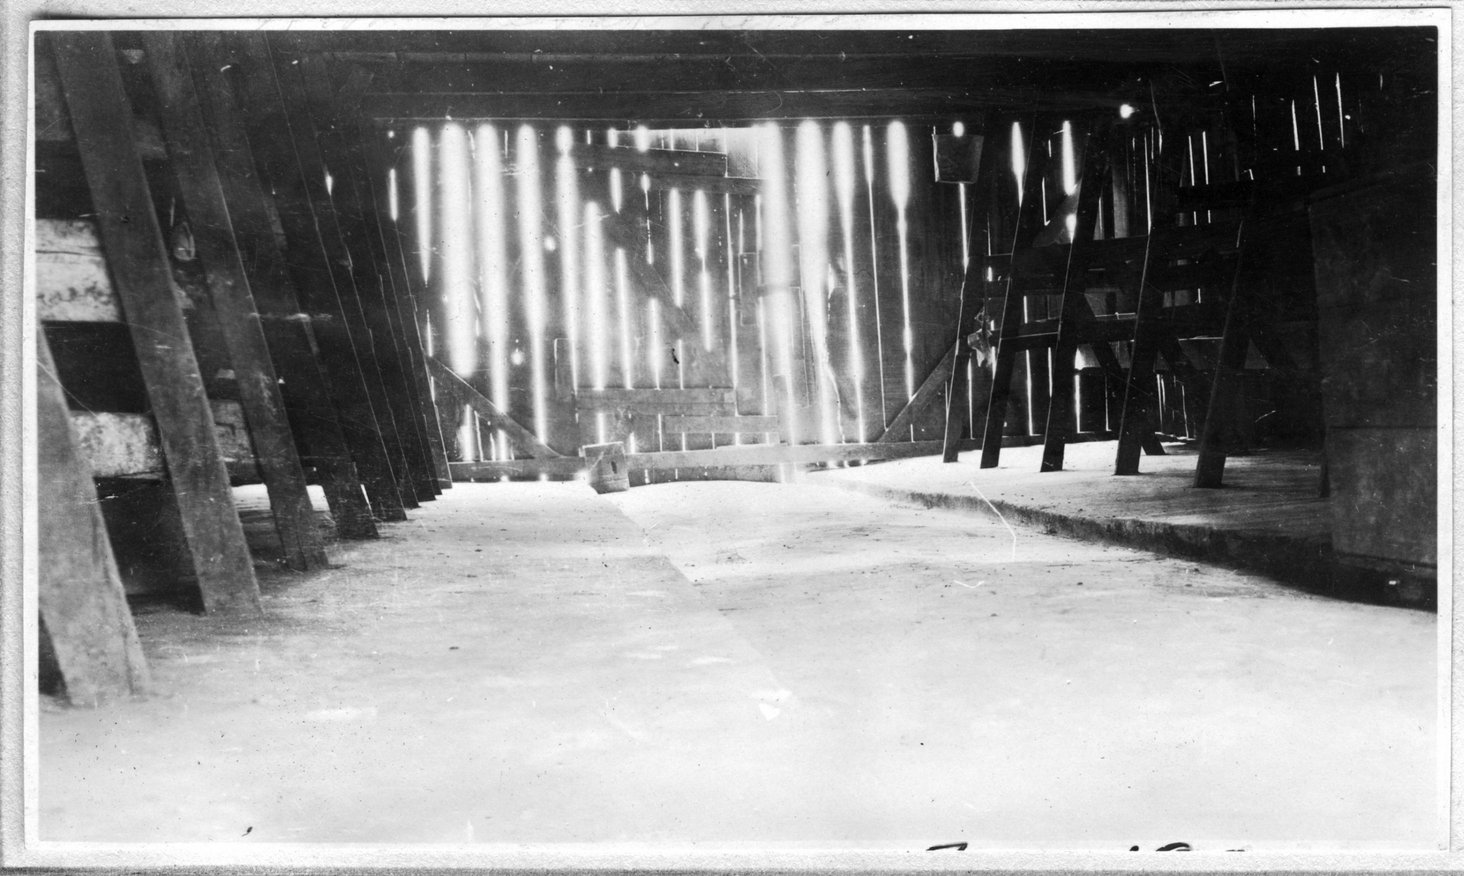 004~J. M. Stephens Interior of Barn Aug 1920.jpg